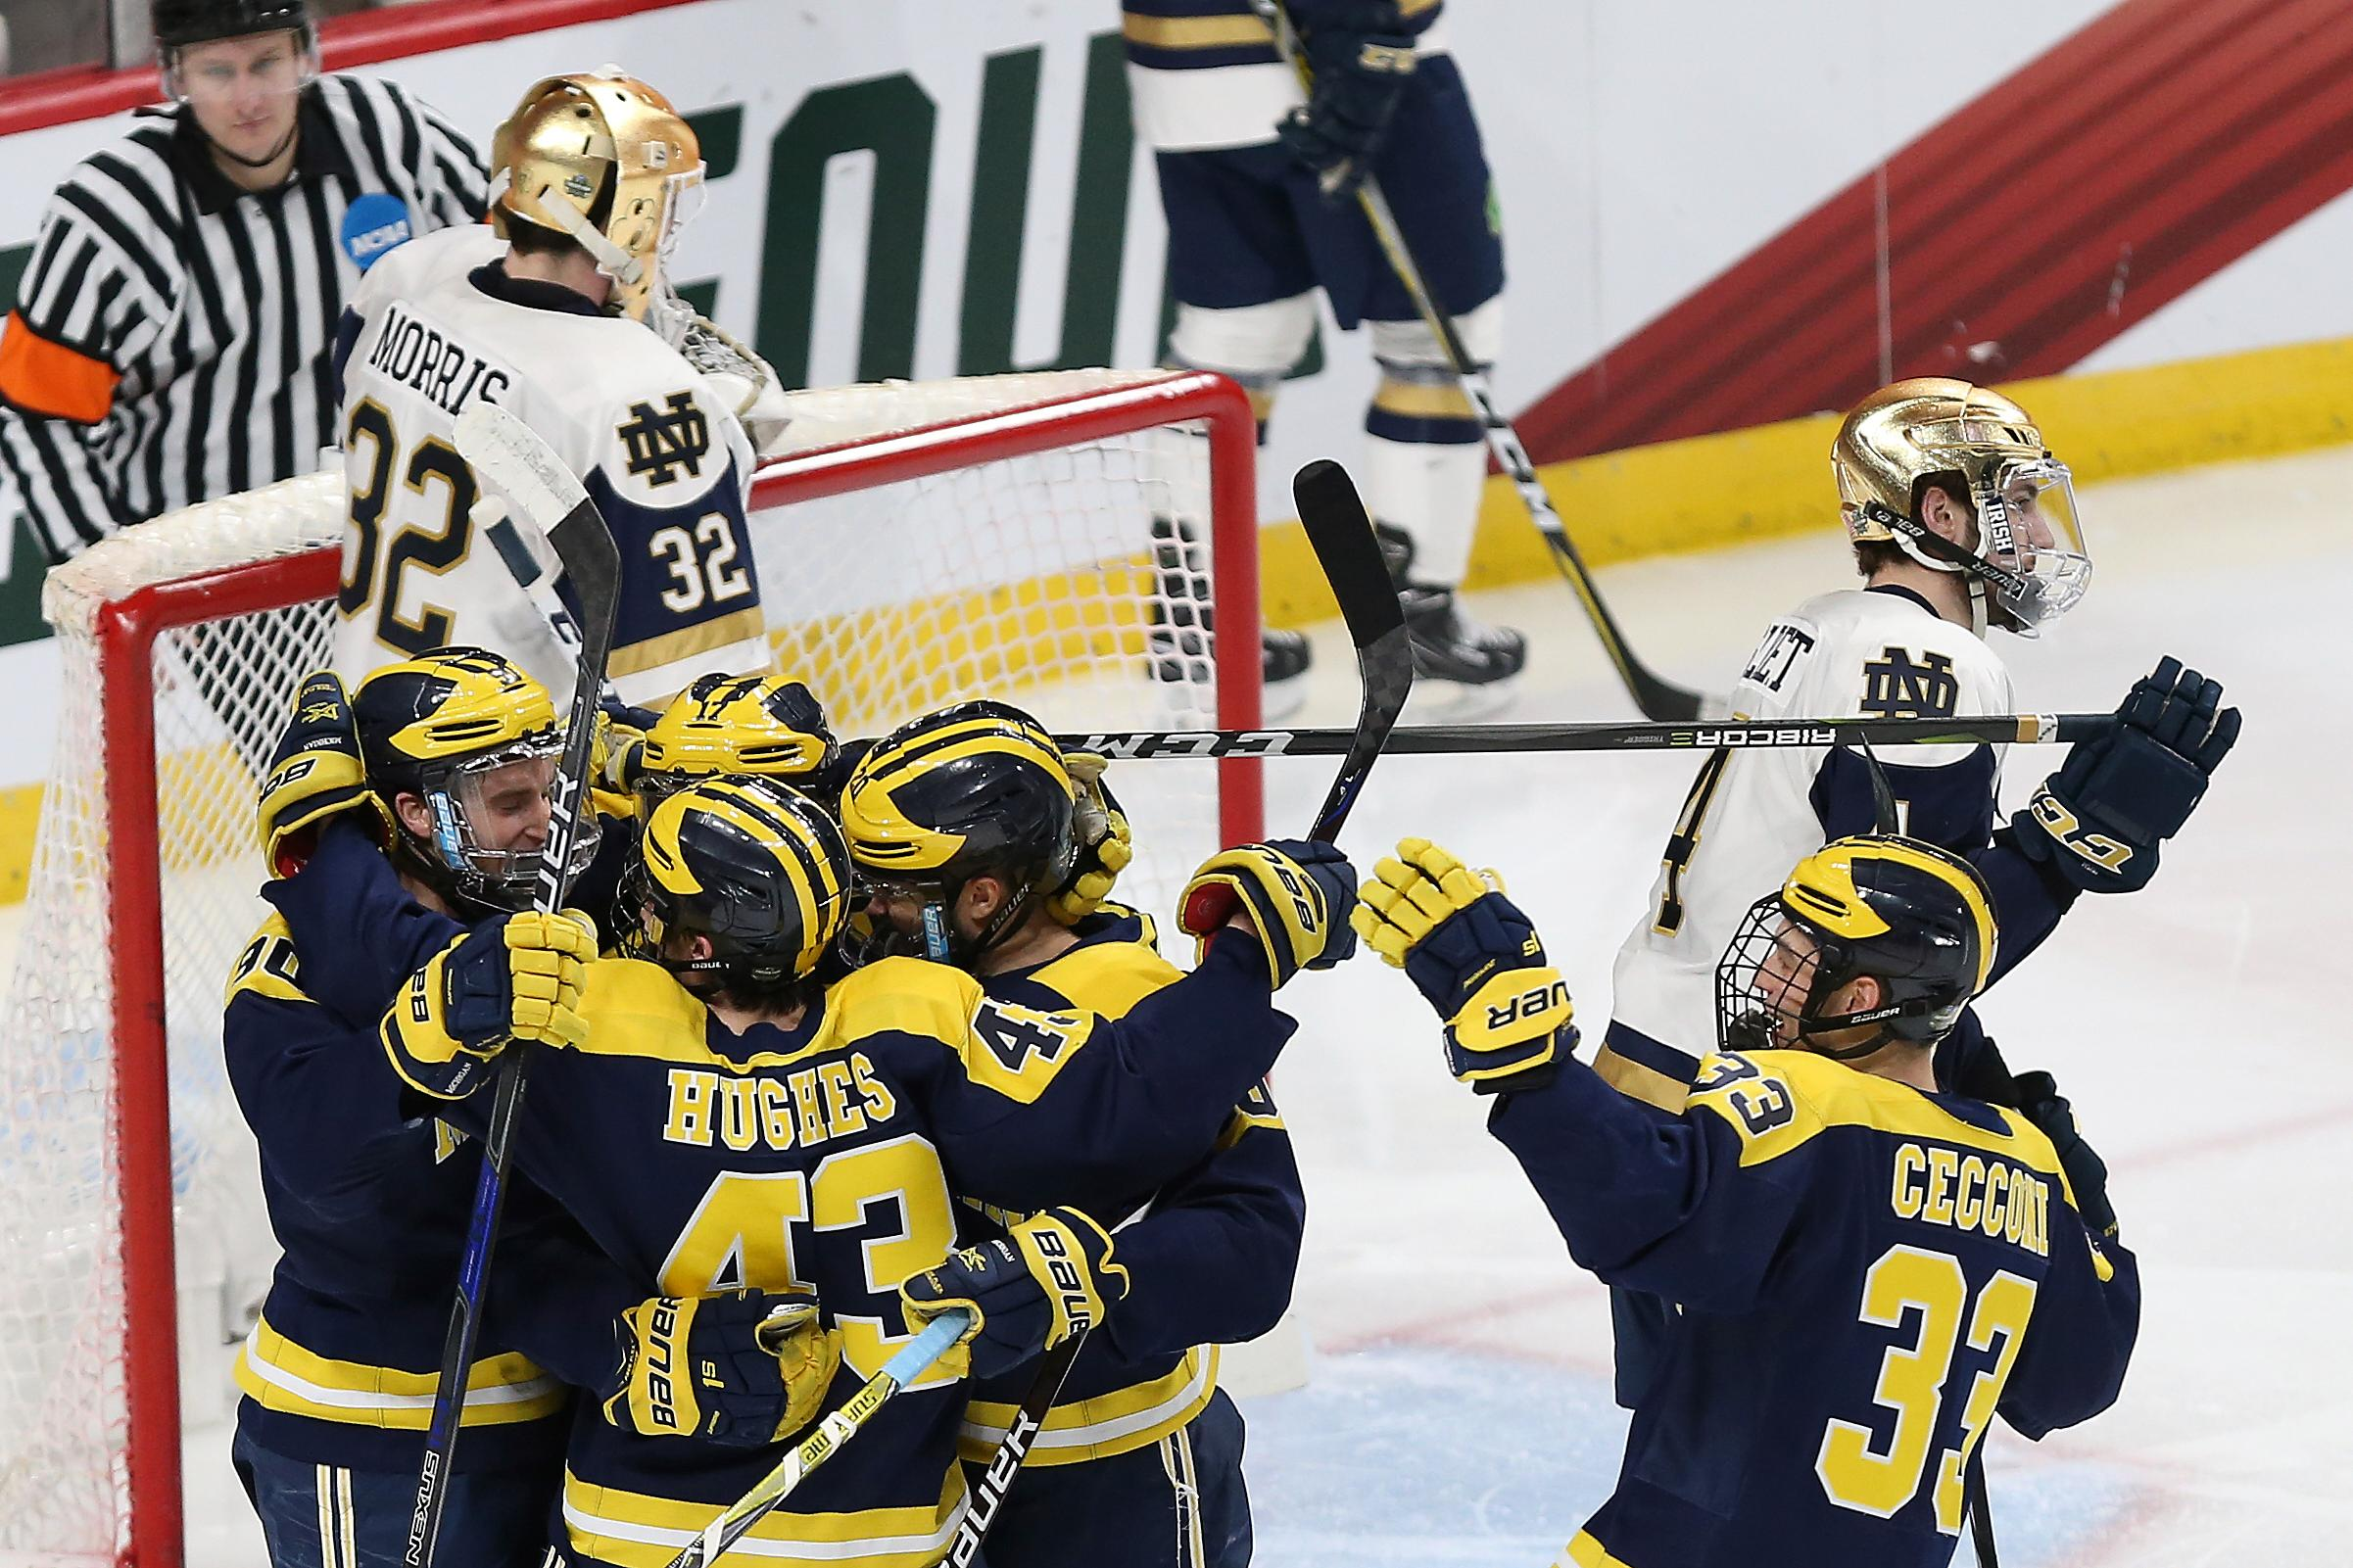 Michigan players celebrate on ice after scoring a goal during the second period of a semifinal in the NCAA men's Frozen Four hockey tournament against Notre Dame, Thursday, April 5, 2018, in St. Paul, Minn. (AP Photo/Stacy Bengs)